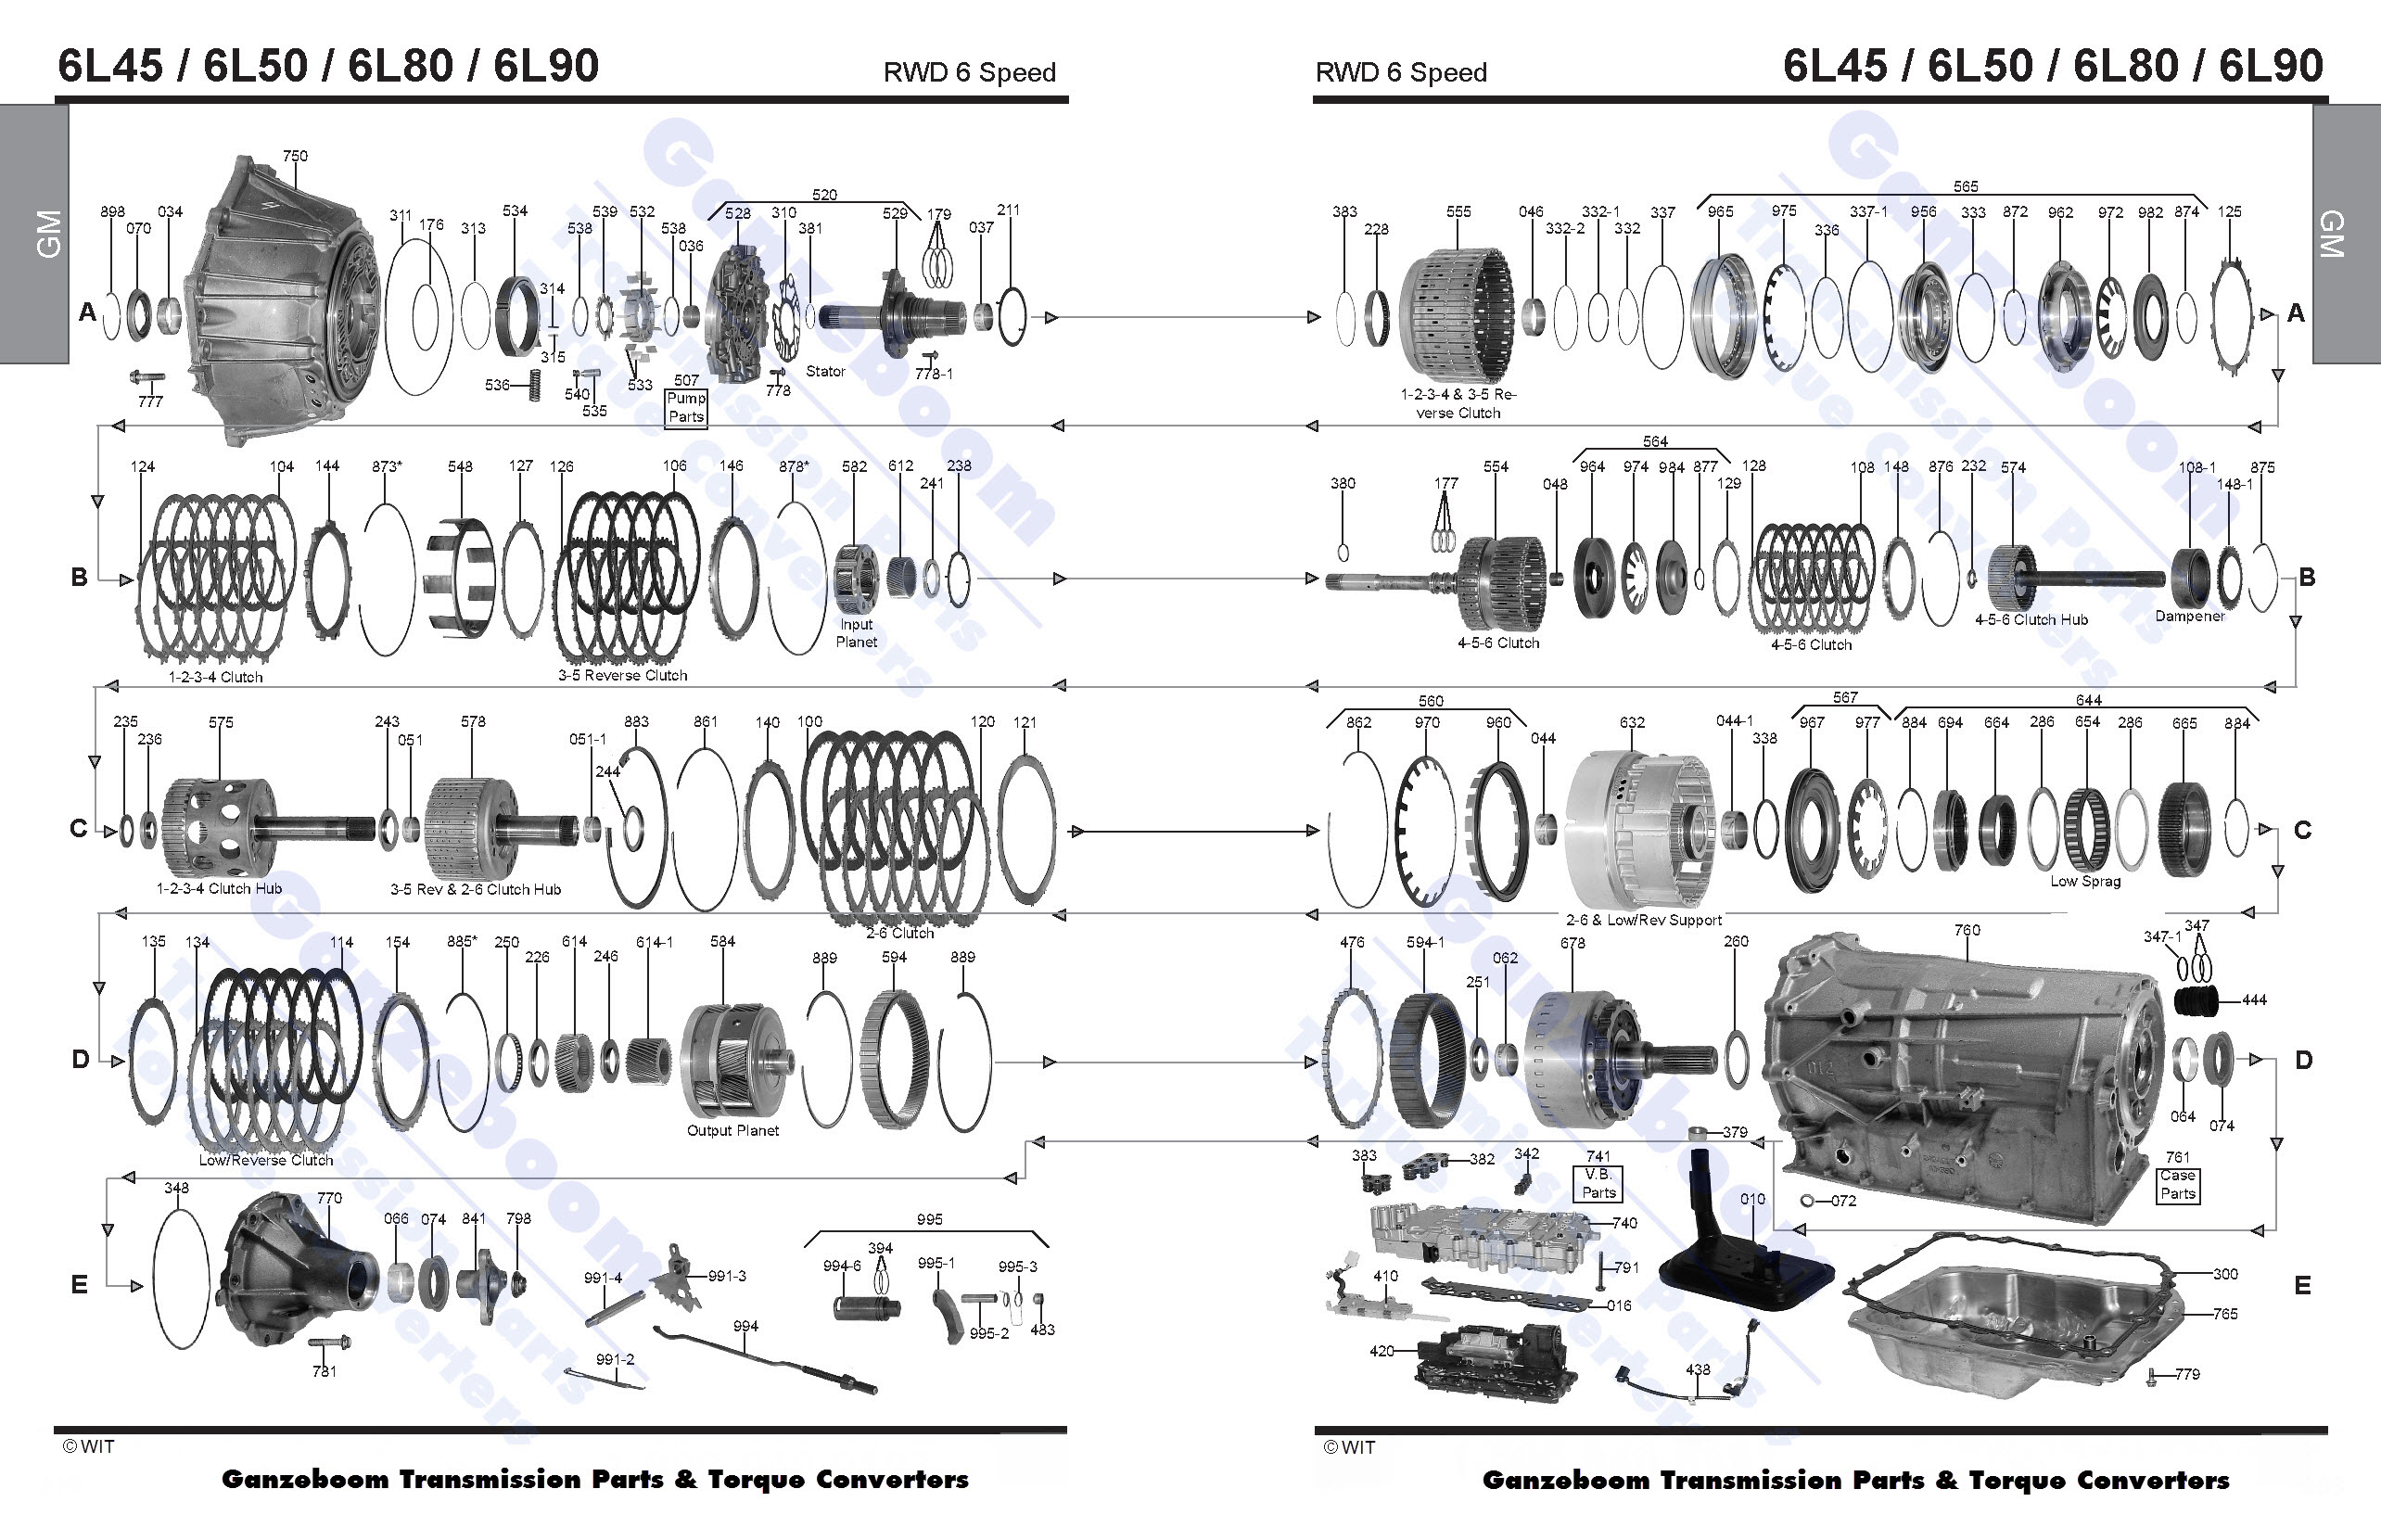 4t45e Transmission Parts Diagram Starting Know About Wiring 4t80e Free Engine Image For User Manual